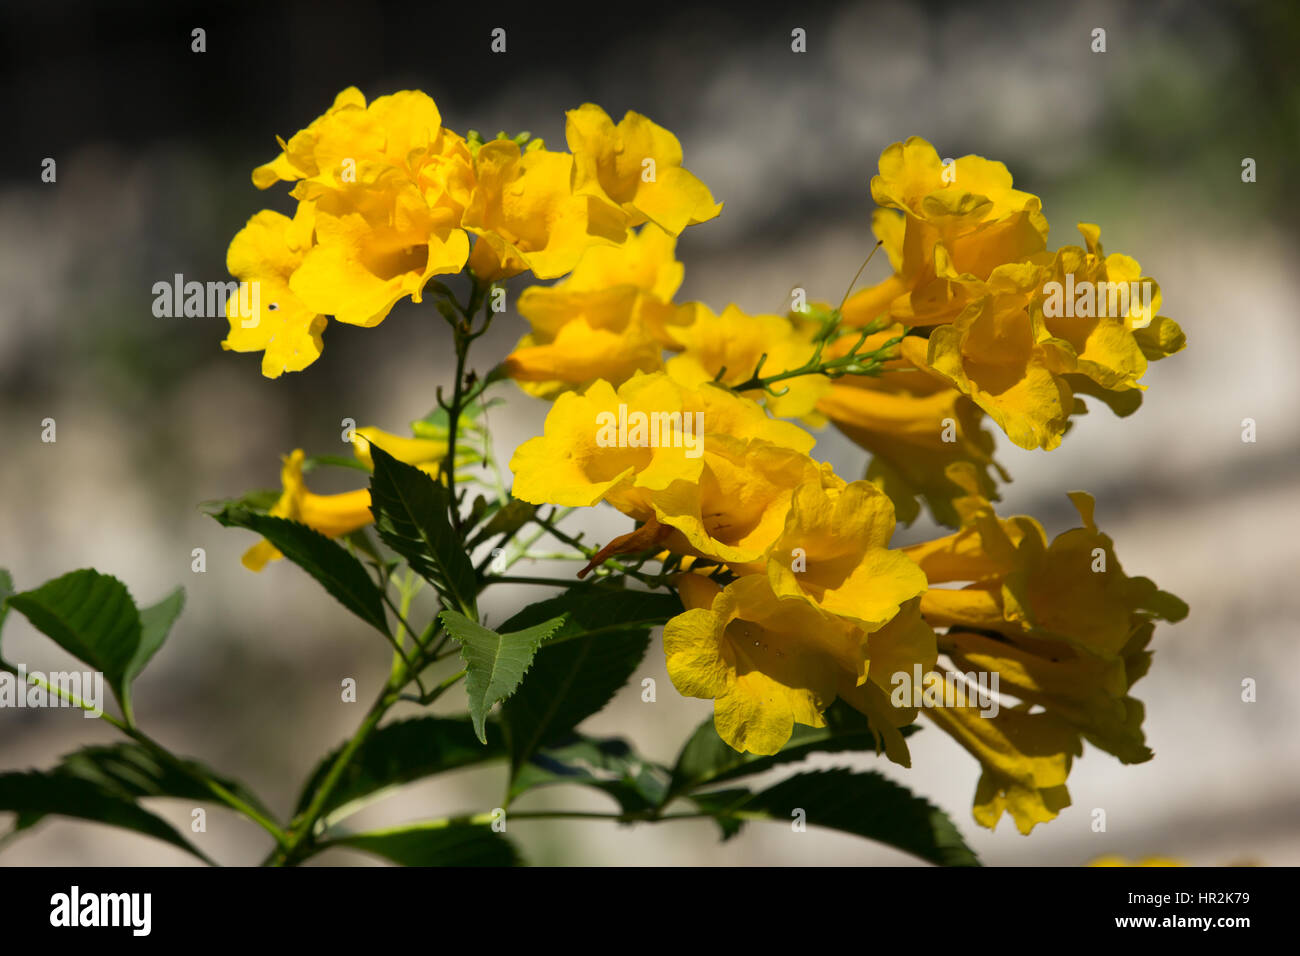 Close Up Of Yellow Flower Yellow Elder Yellow Bells Or Stock